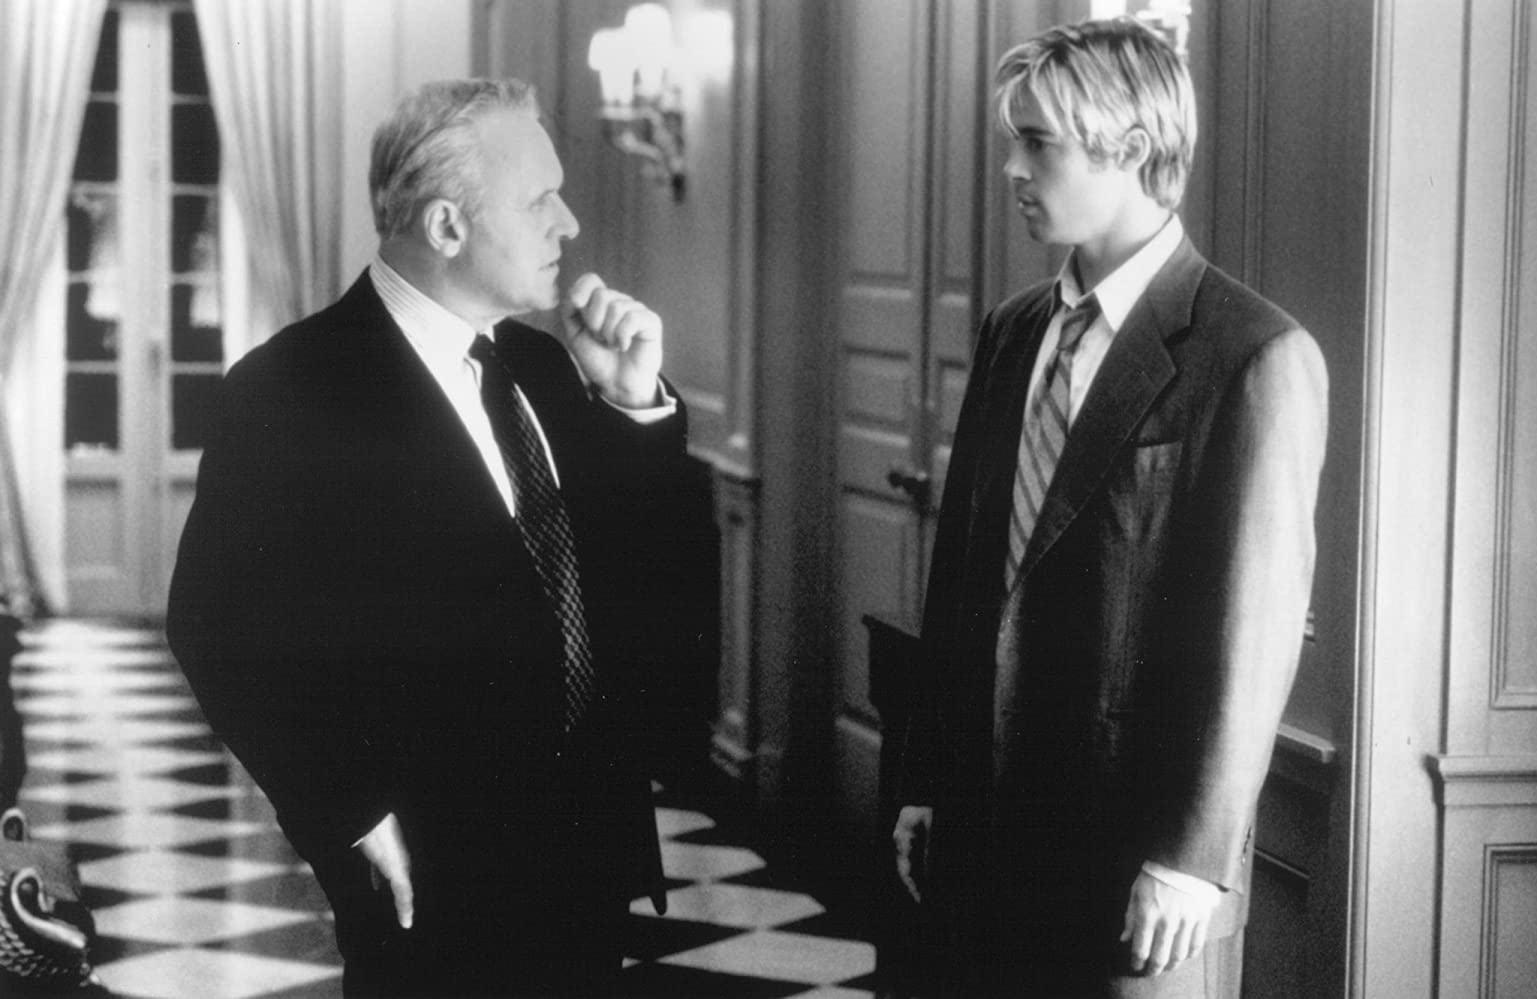 Brad Pitt and Anthony Hopkins in Meet Joe Black 1998